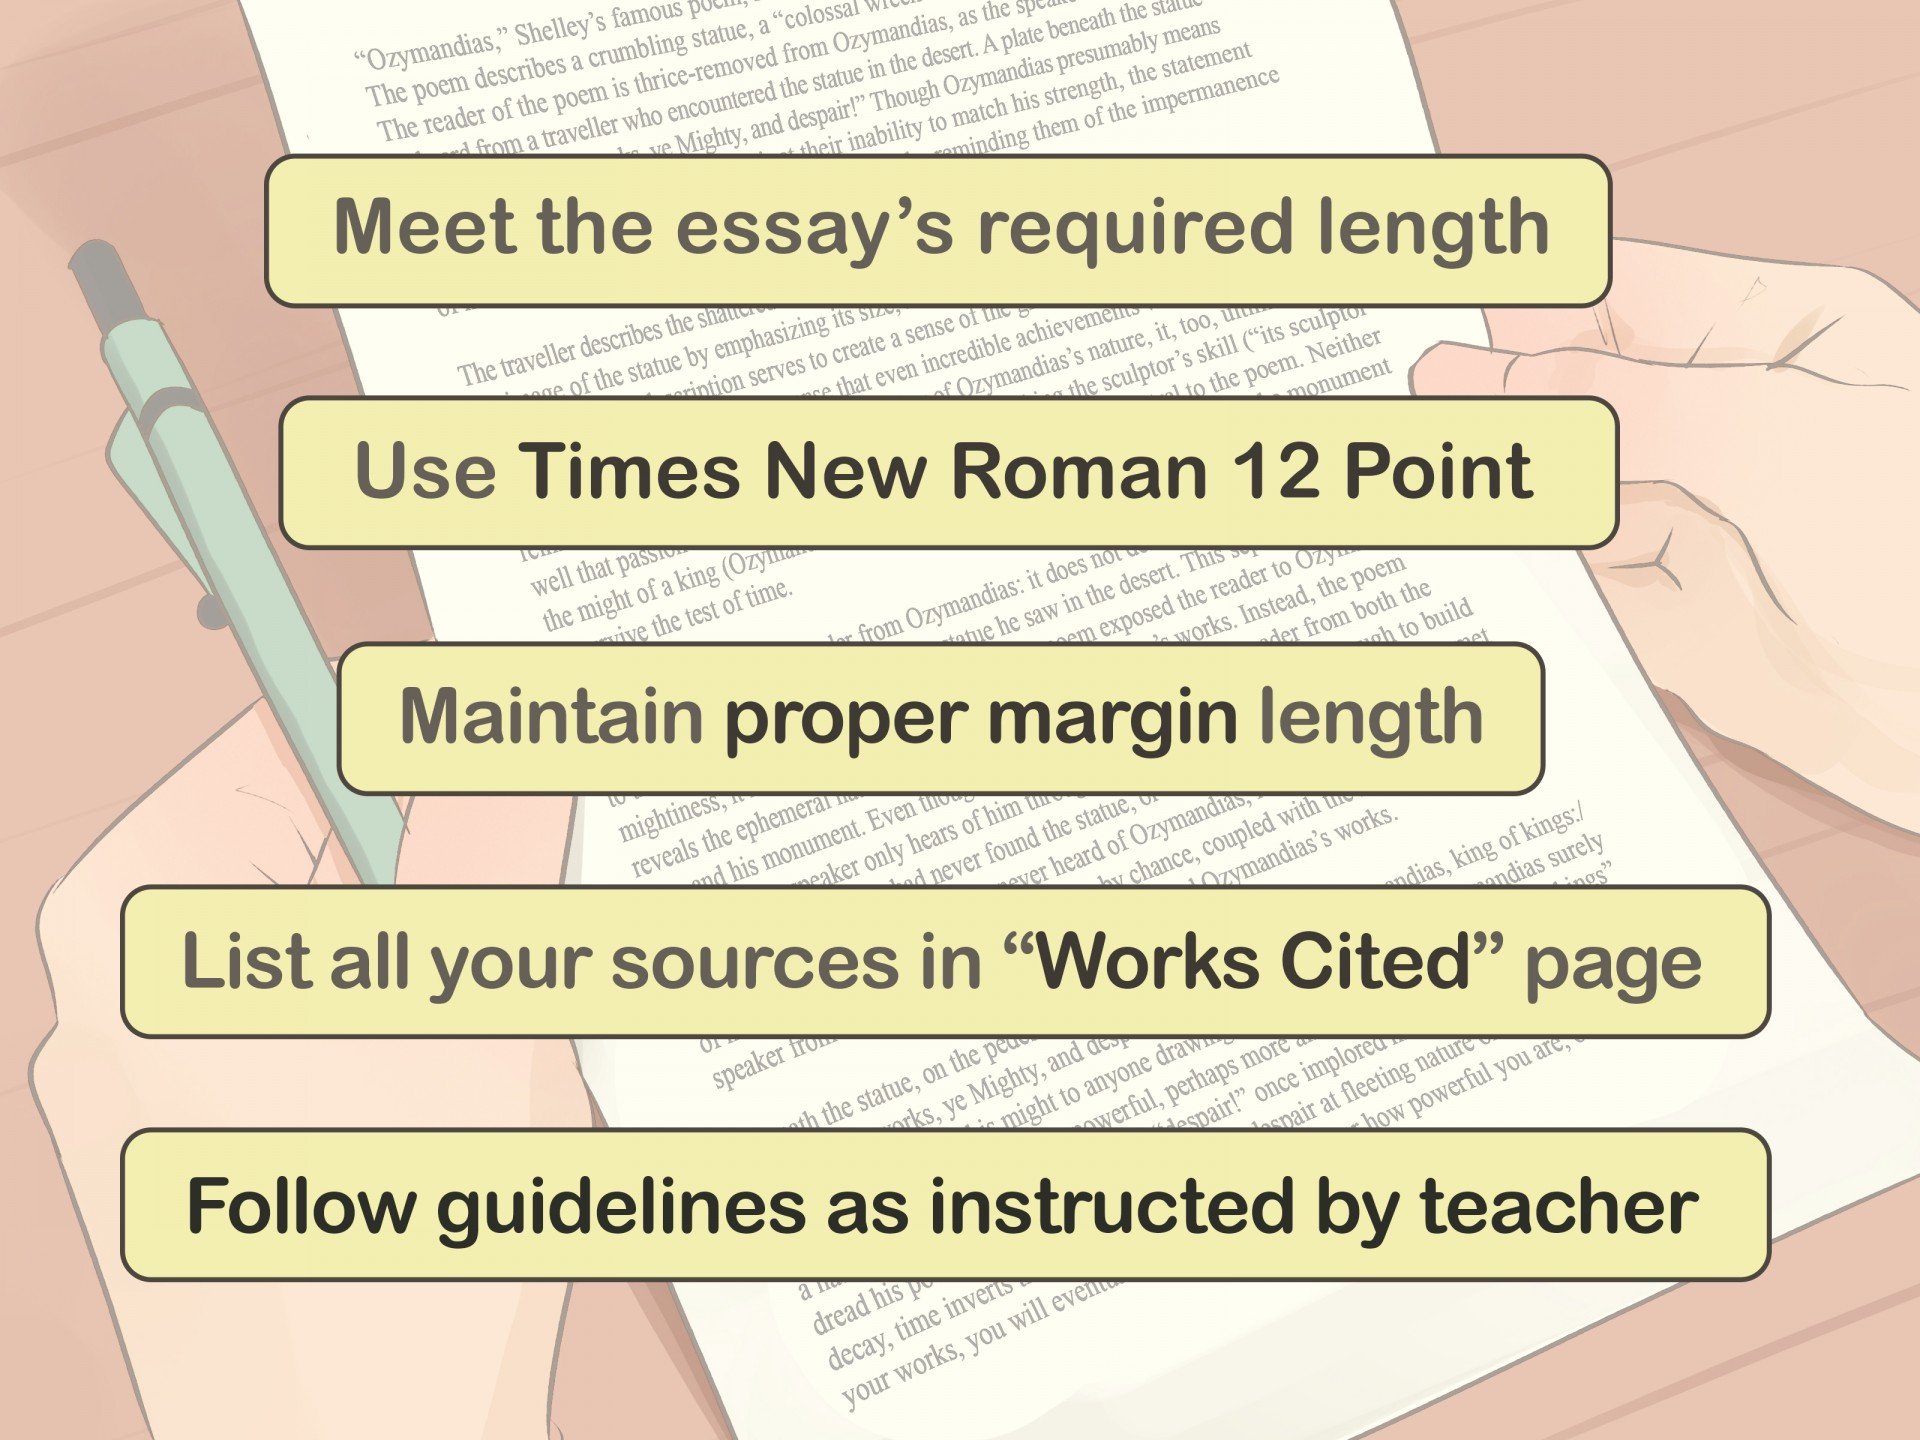 022 Essay Example Length Stretch Out An Step Version Striking Word Count Lengthener For Common App 1920